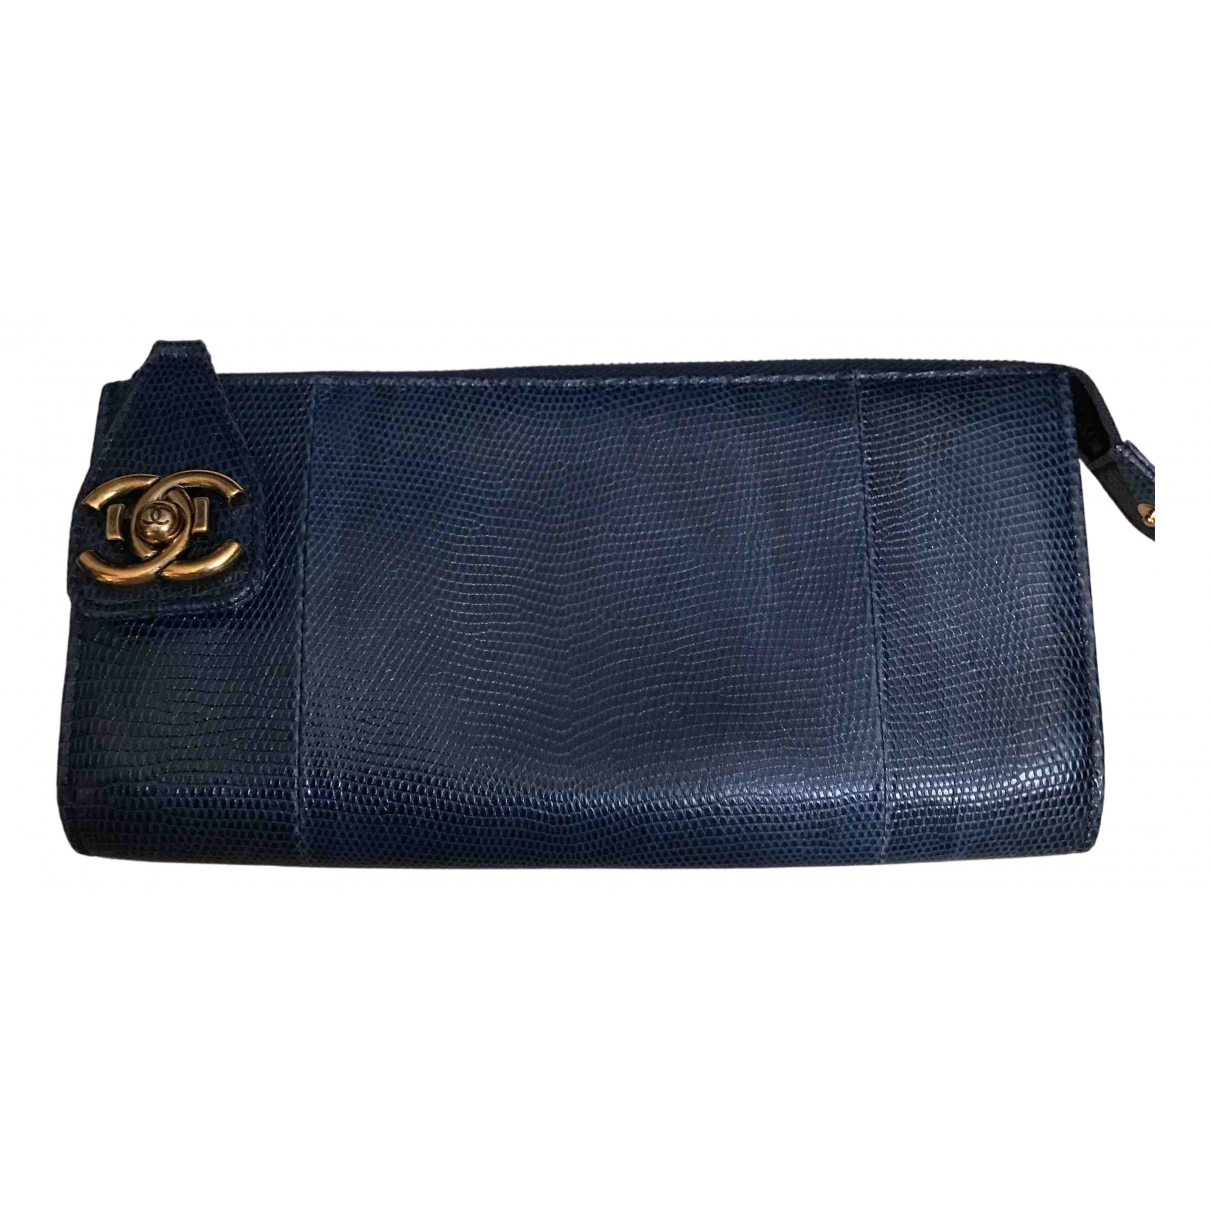 Chanel blue Lizard CLUTCH BAGS